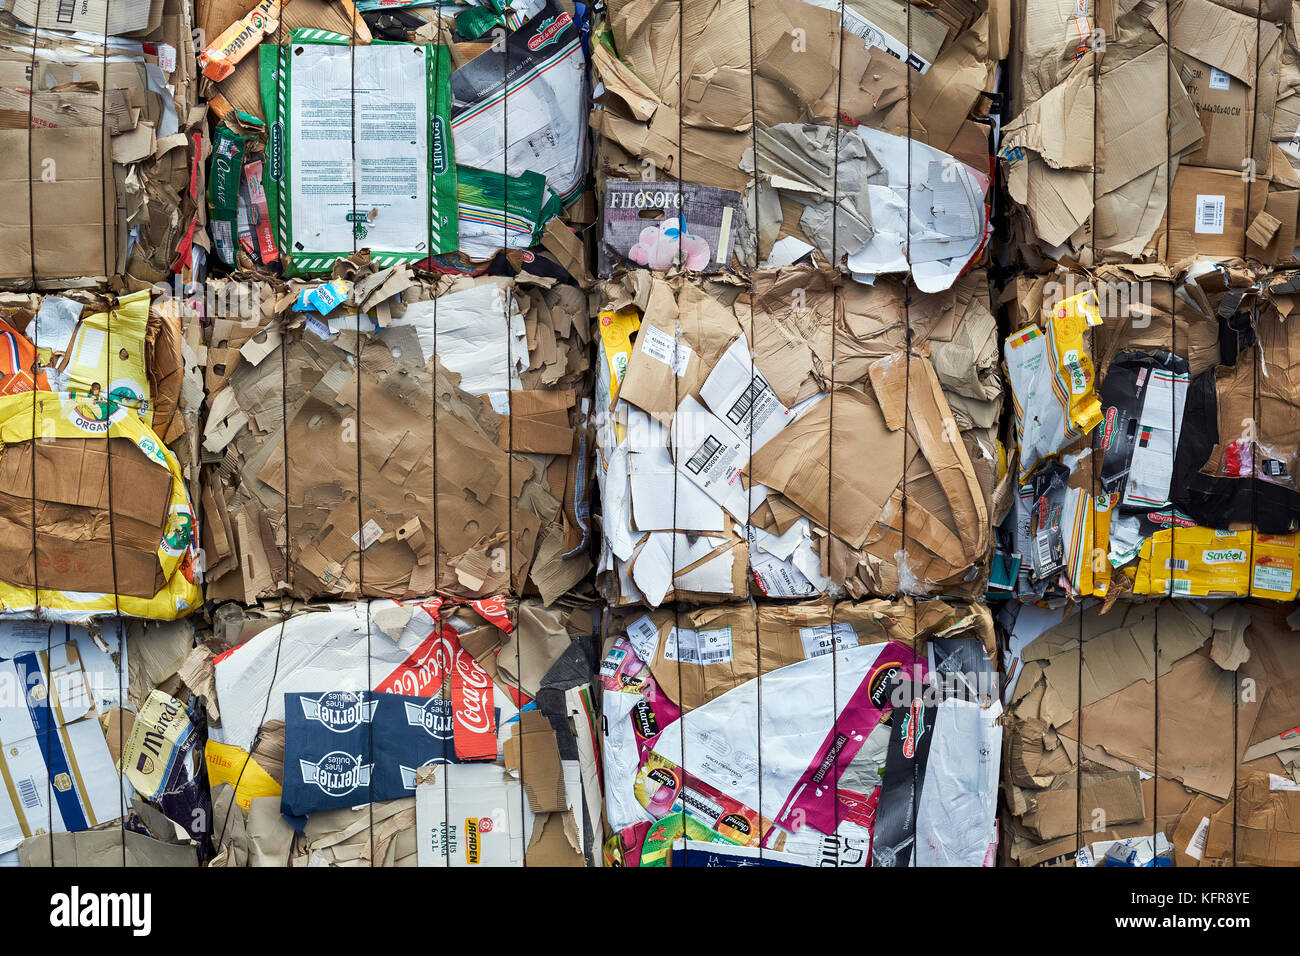 Household waste recycling collection - Stock Image